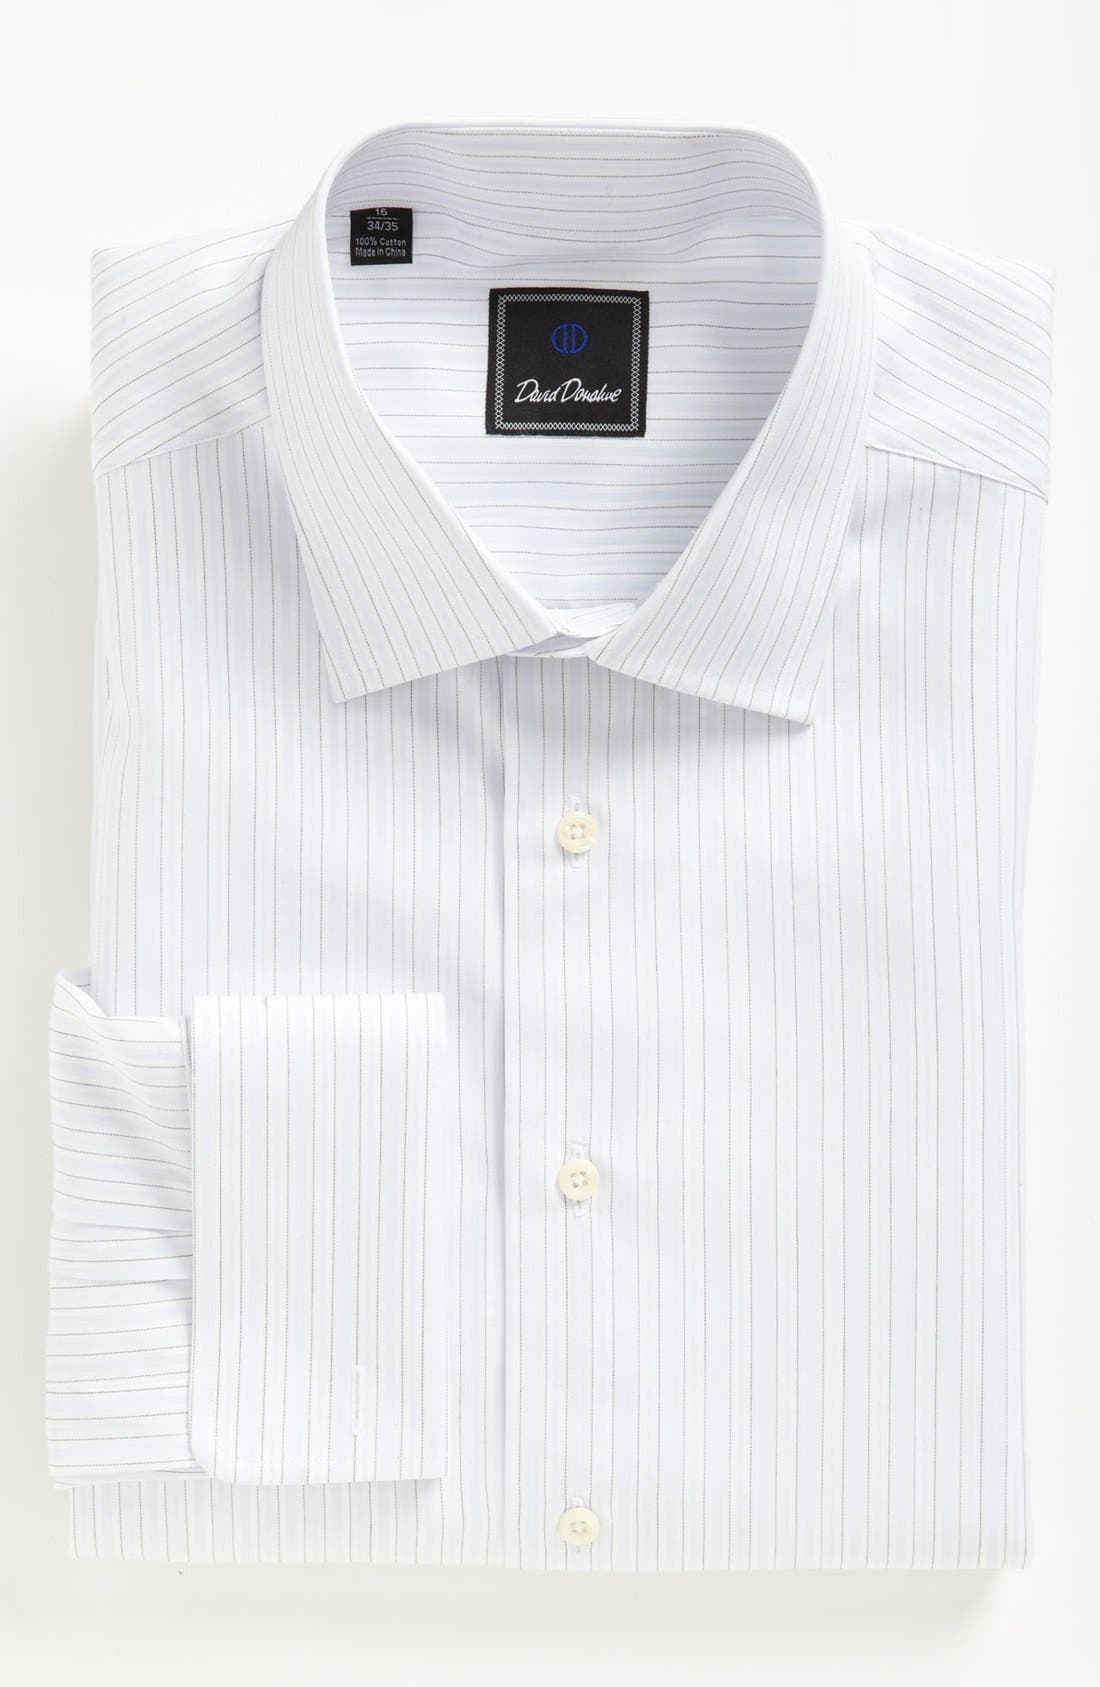 Main Image - David Donahue Dress Shirt & Tie